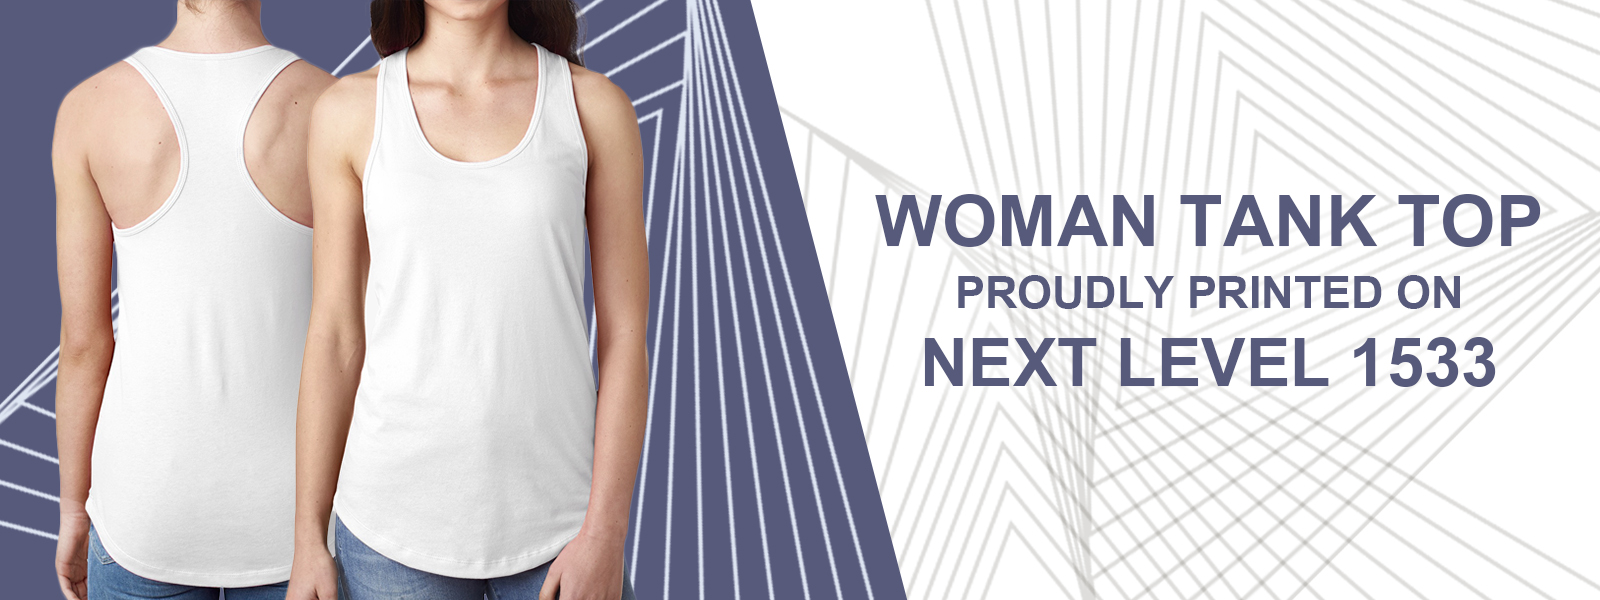 teespedia-banner-women-tank-top-category11.jpg